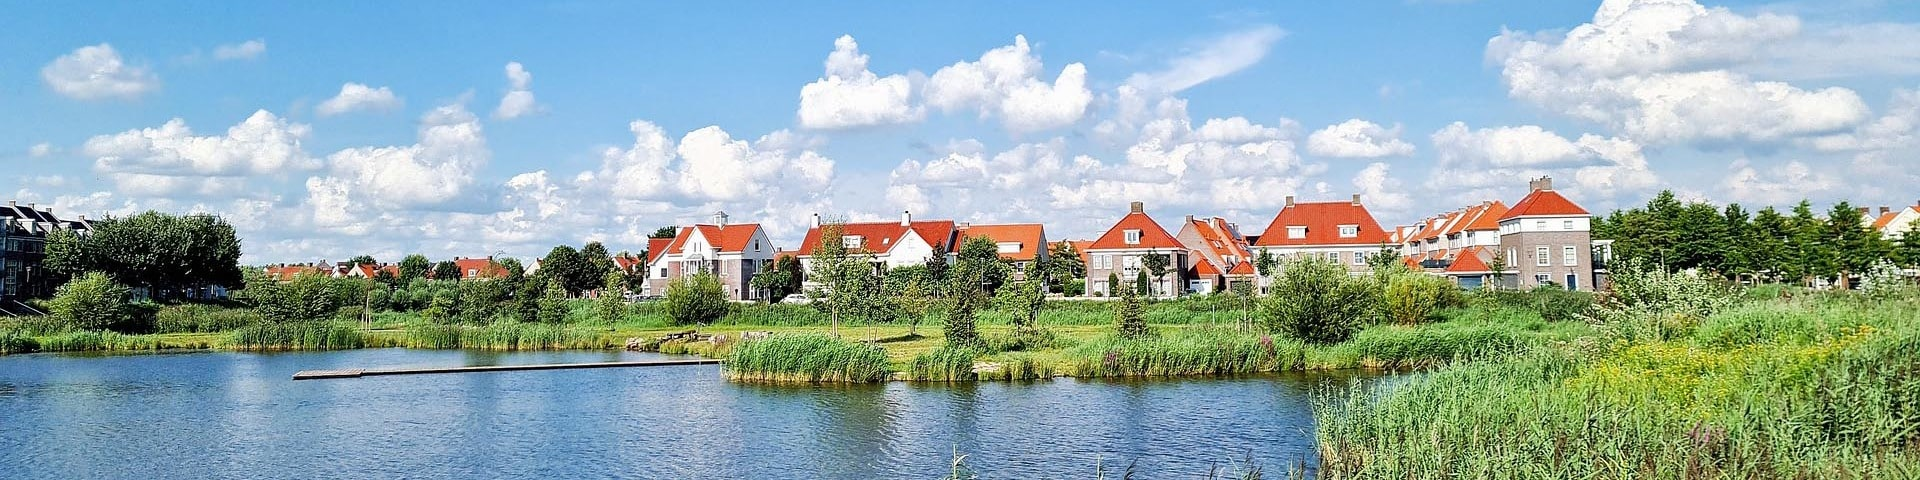 lake view with houses in Helmond